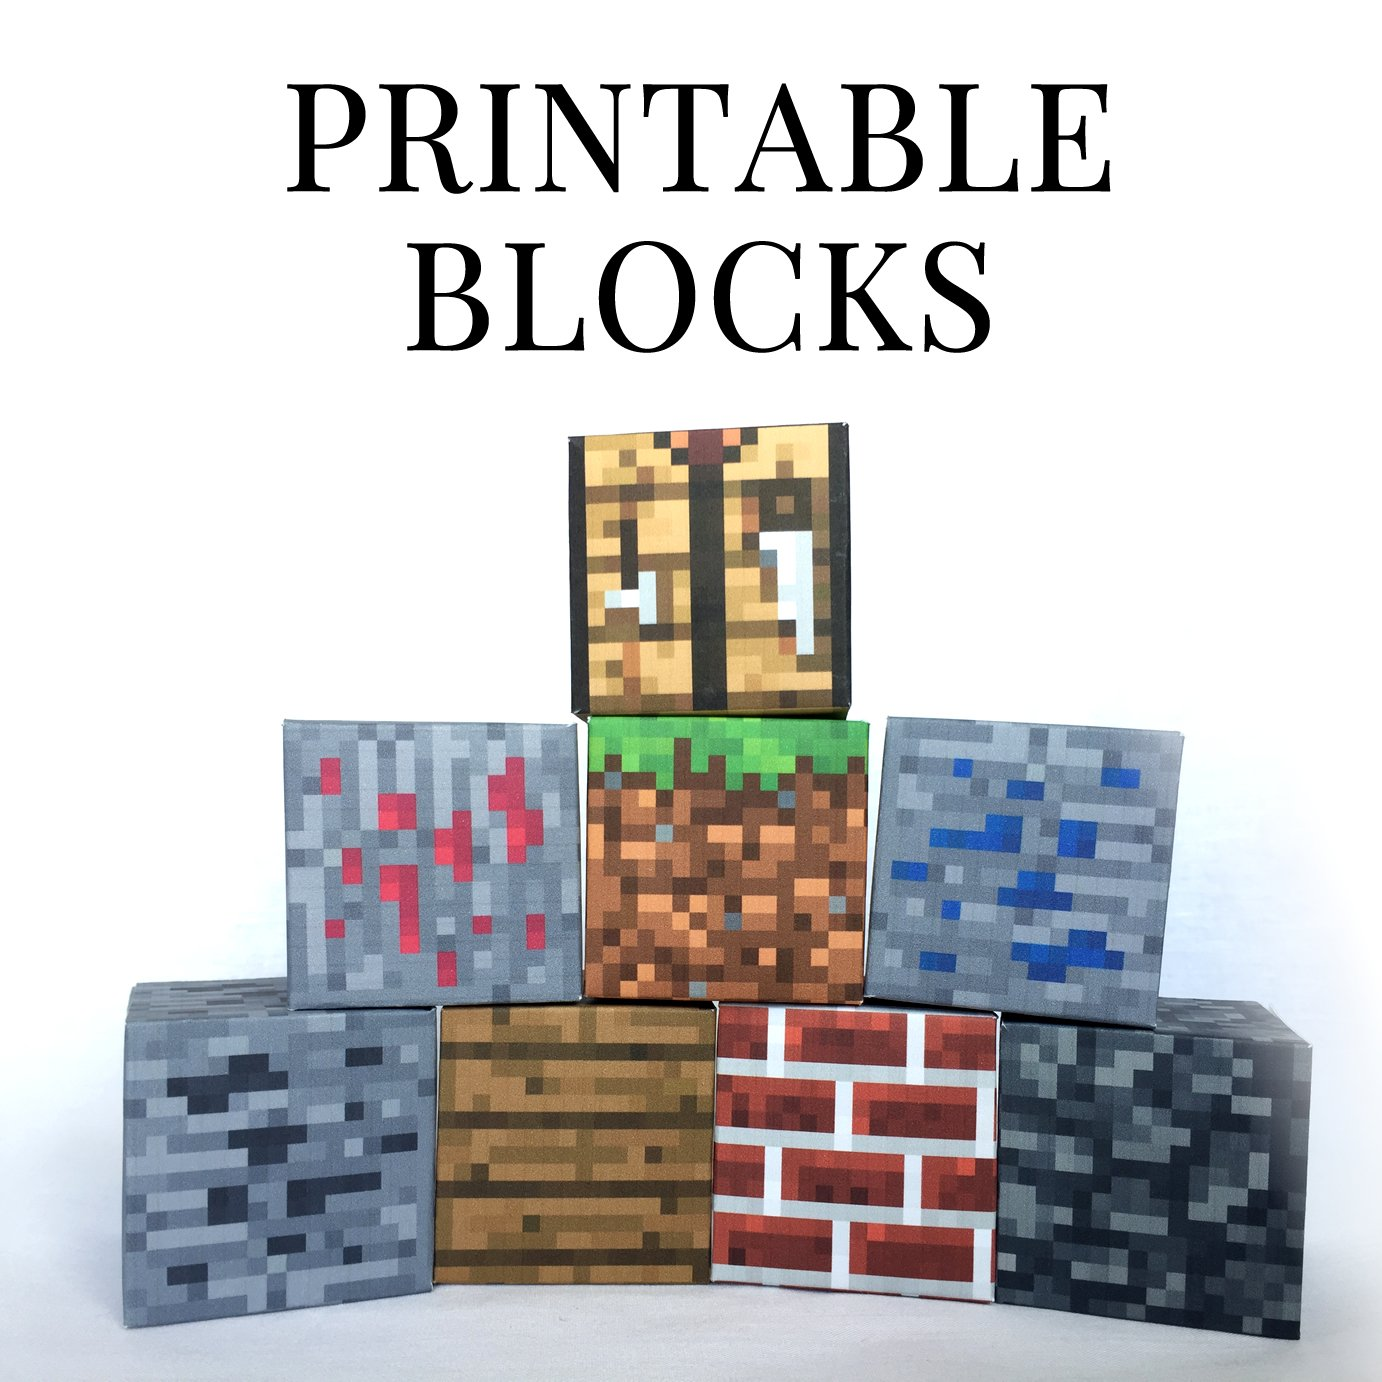 Current image intended for printable minecraft blocks